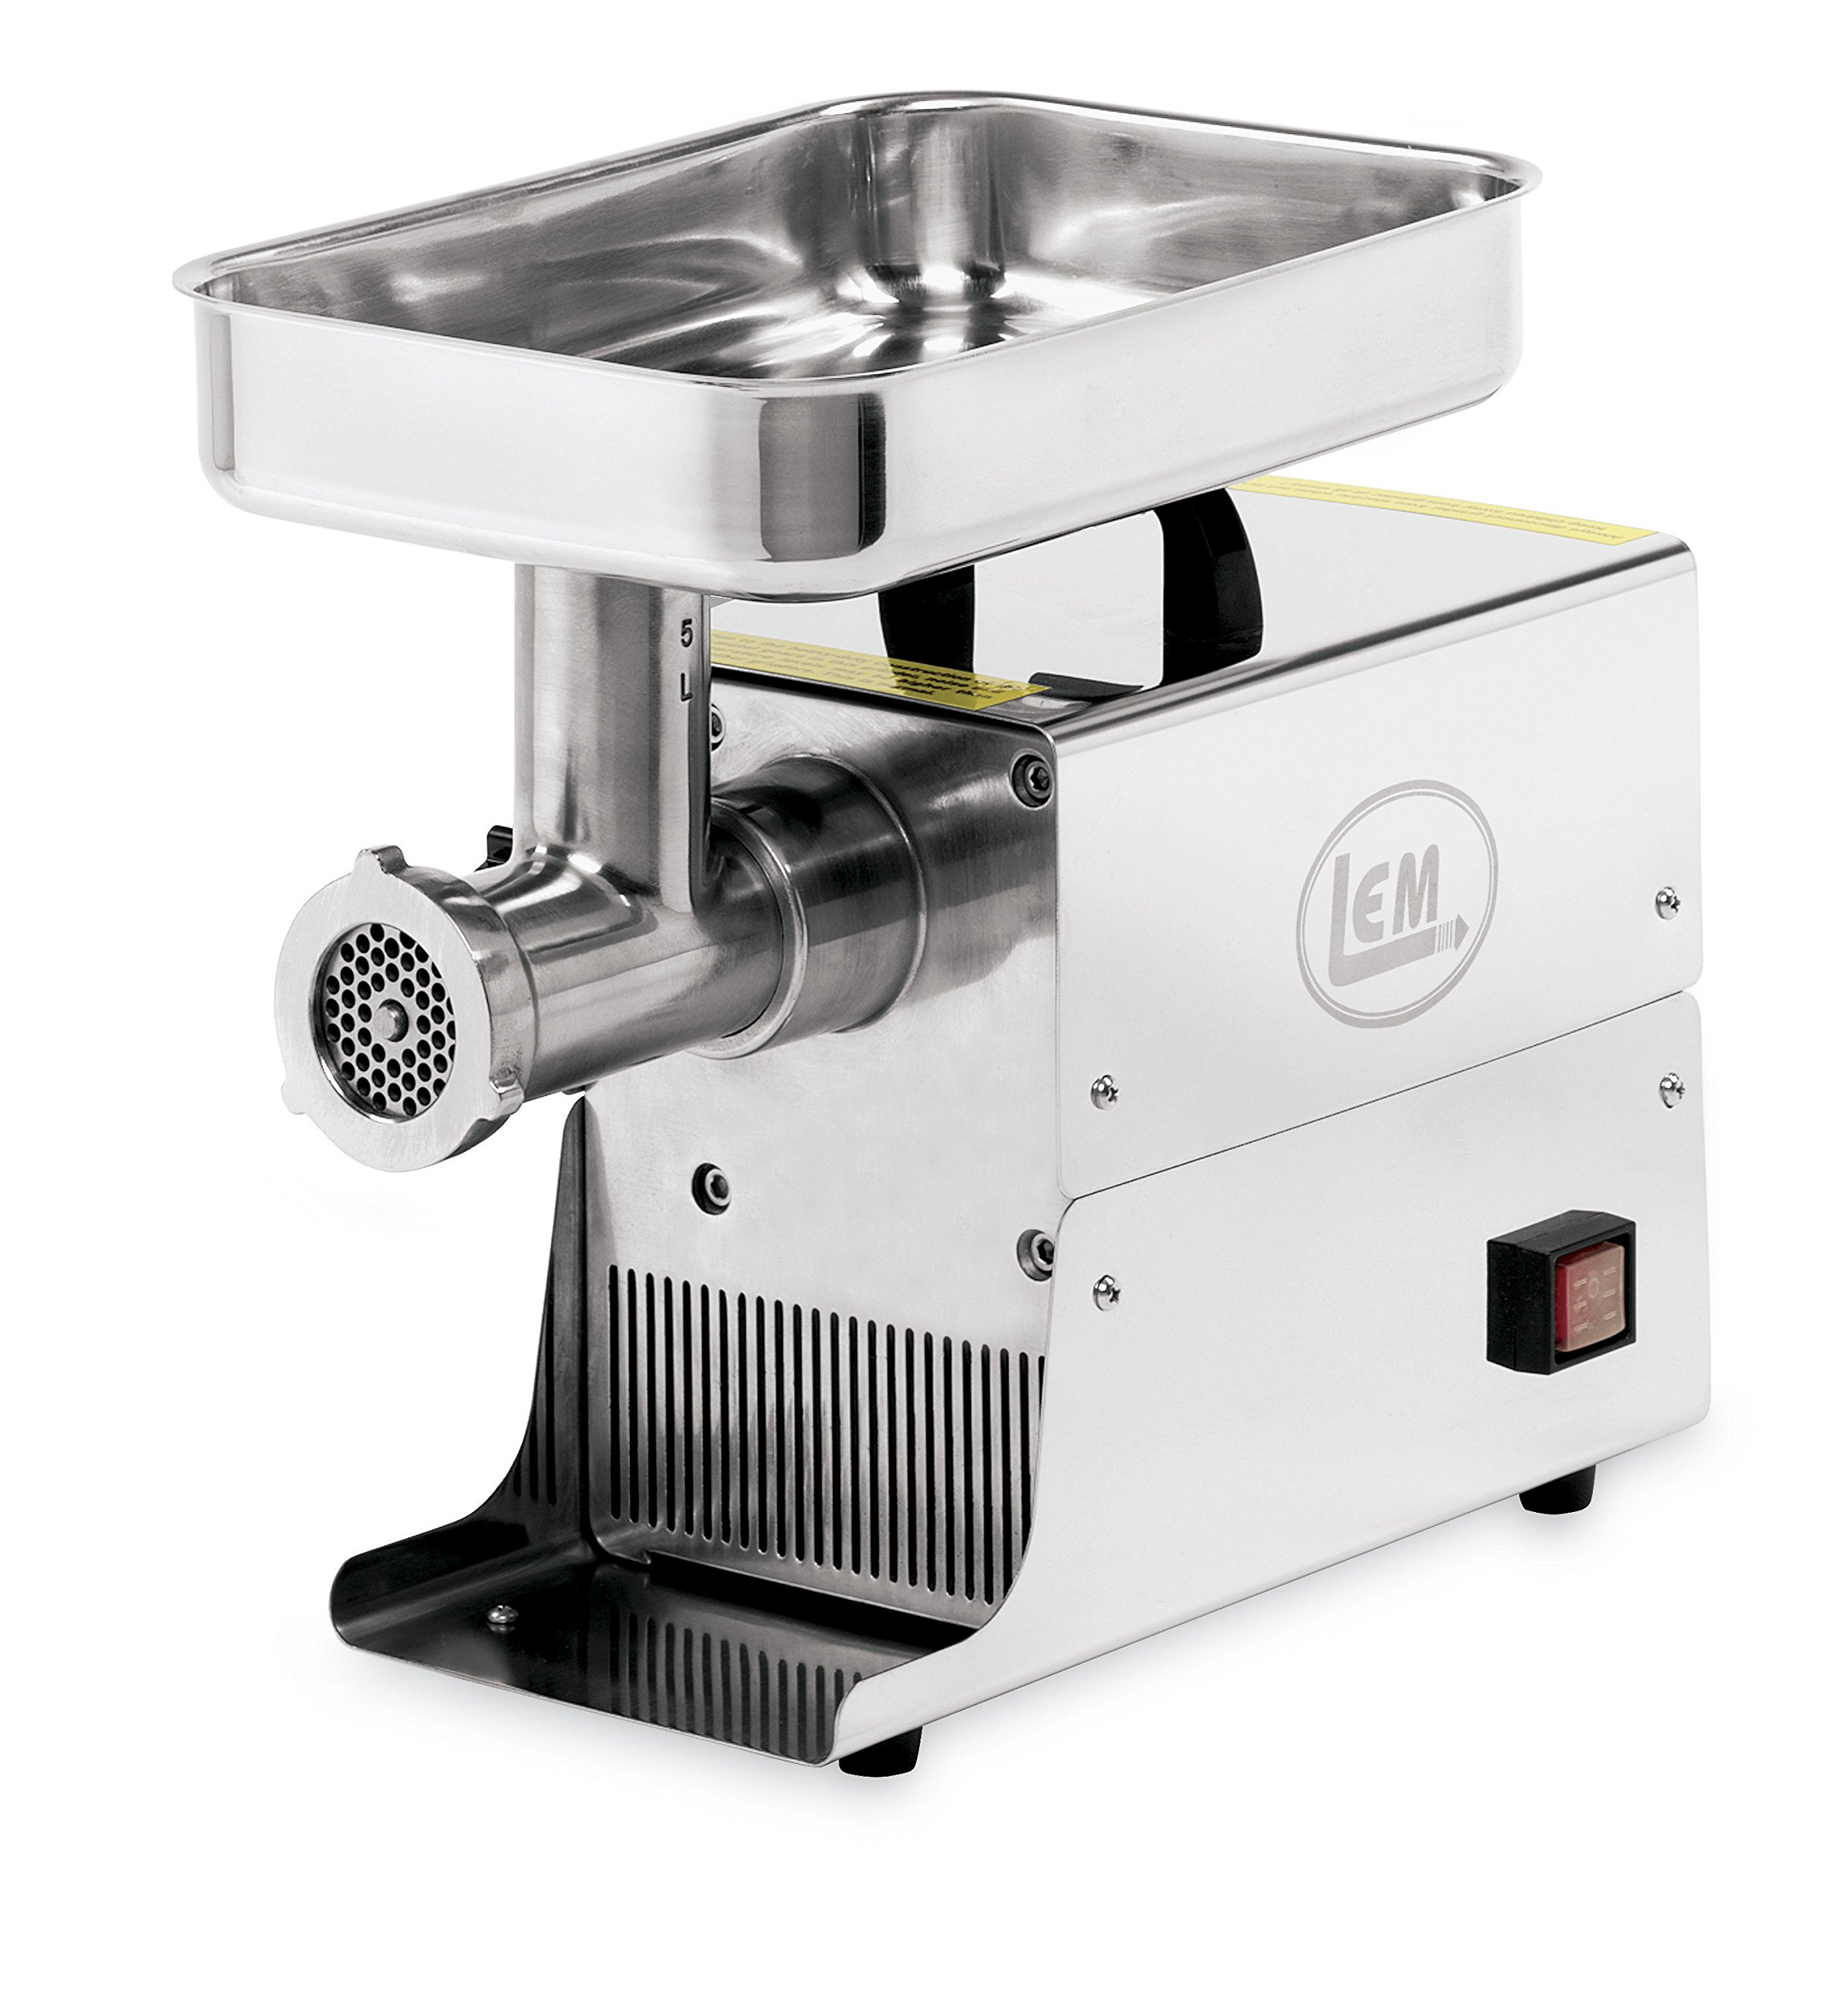 LEM Products W777 #5 LEM Stainless Steel .25 HP Big Bite Grinder